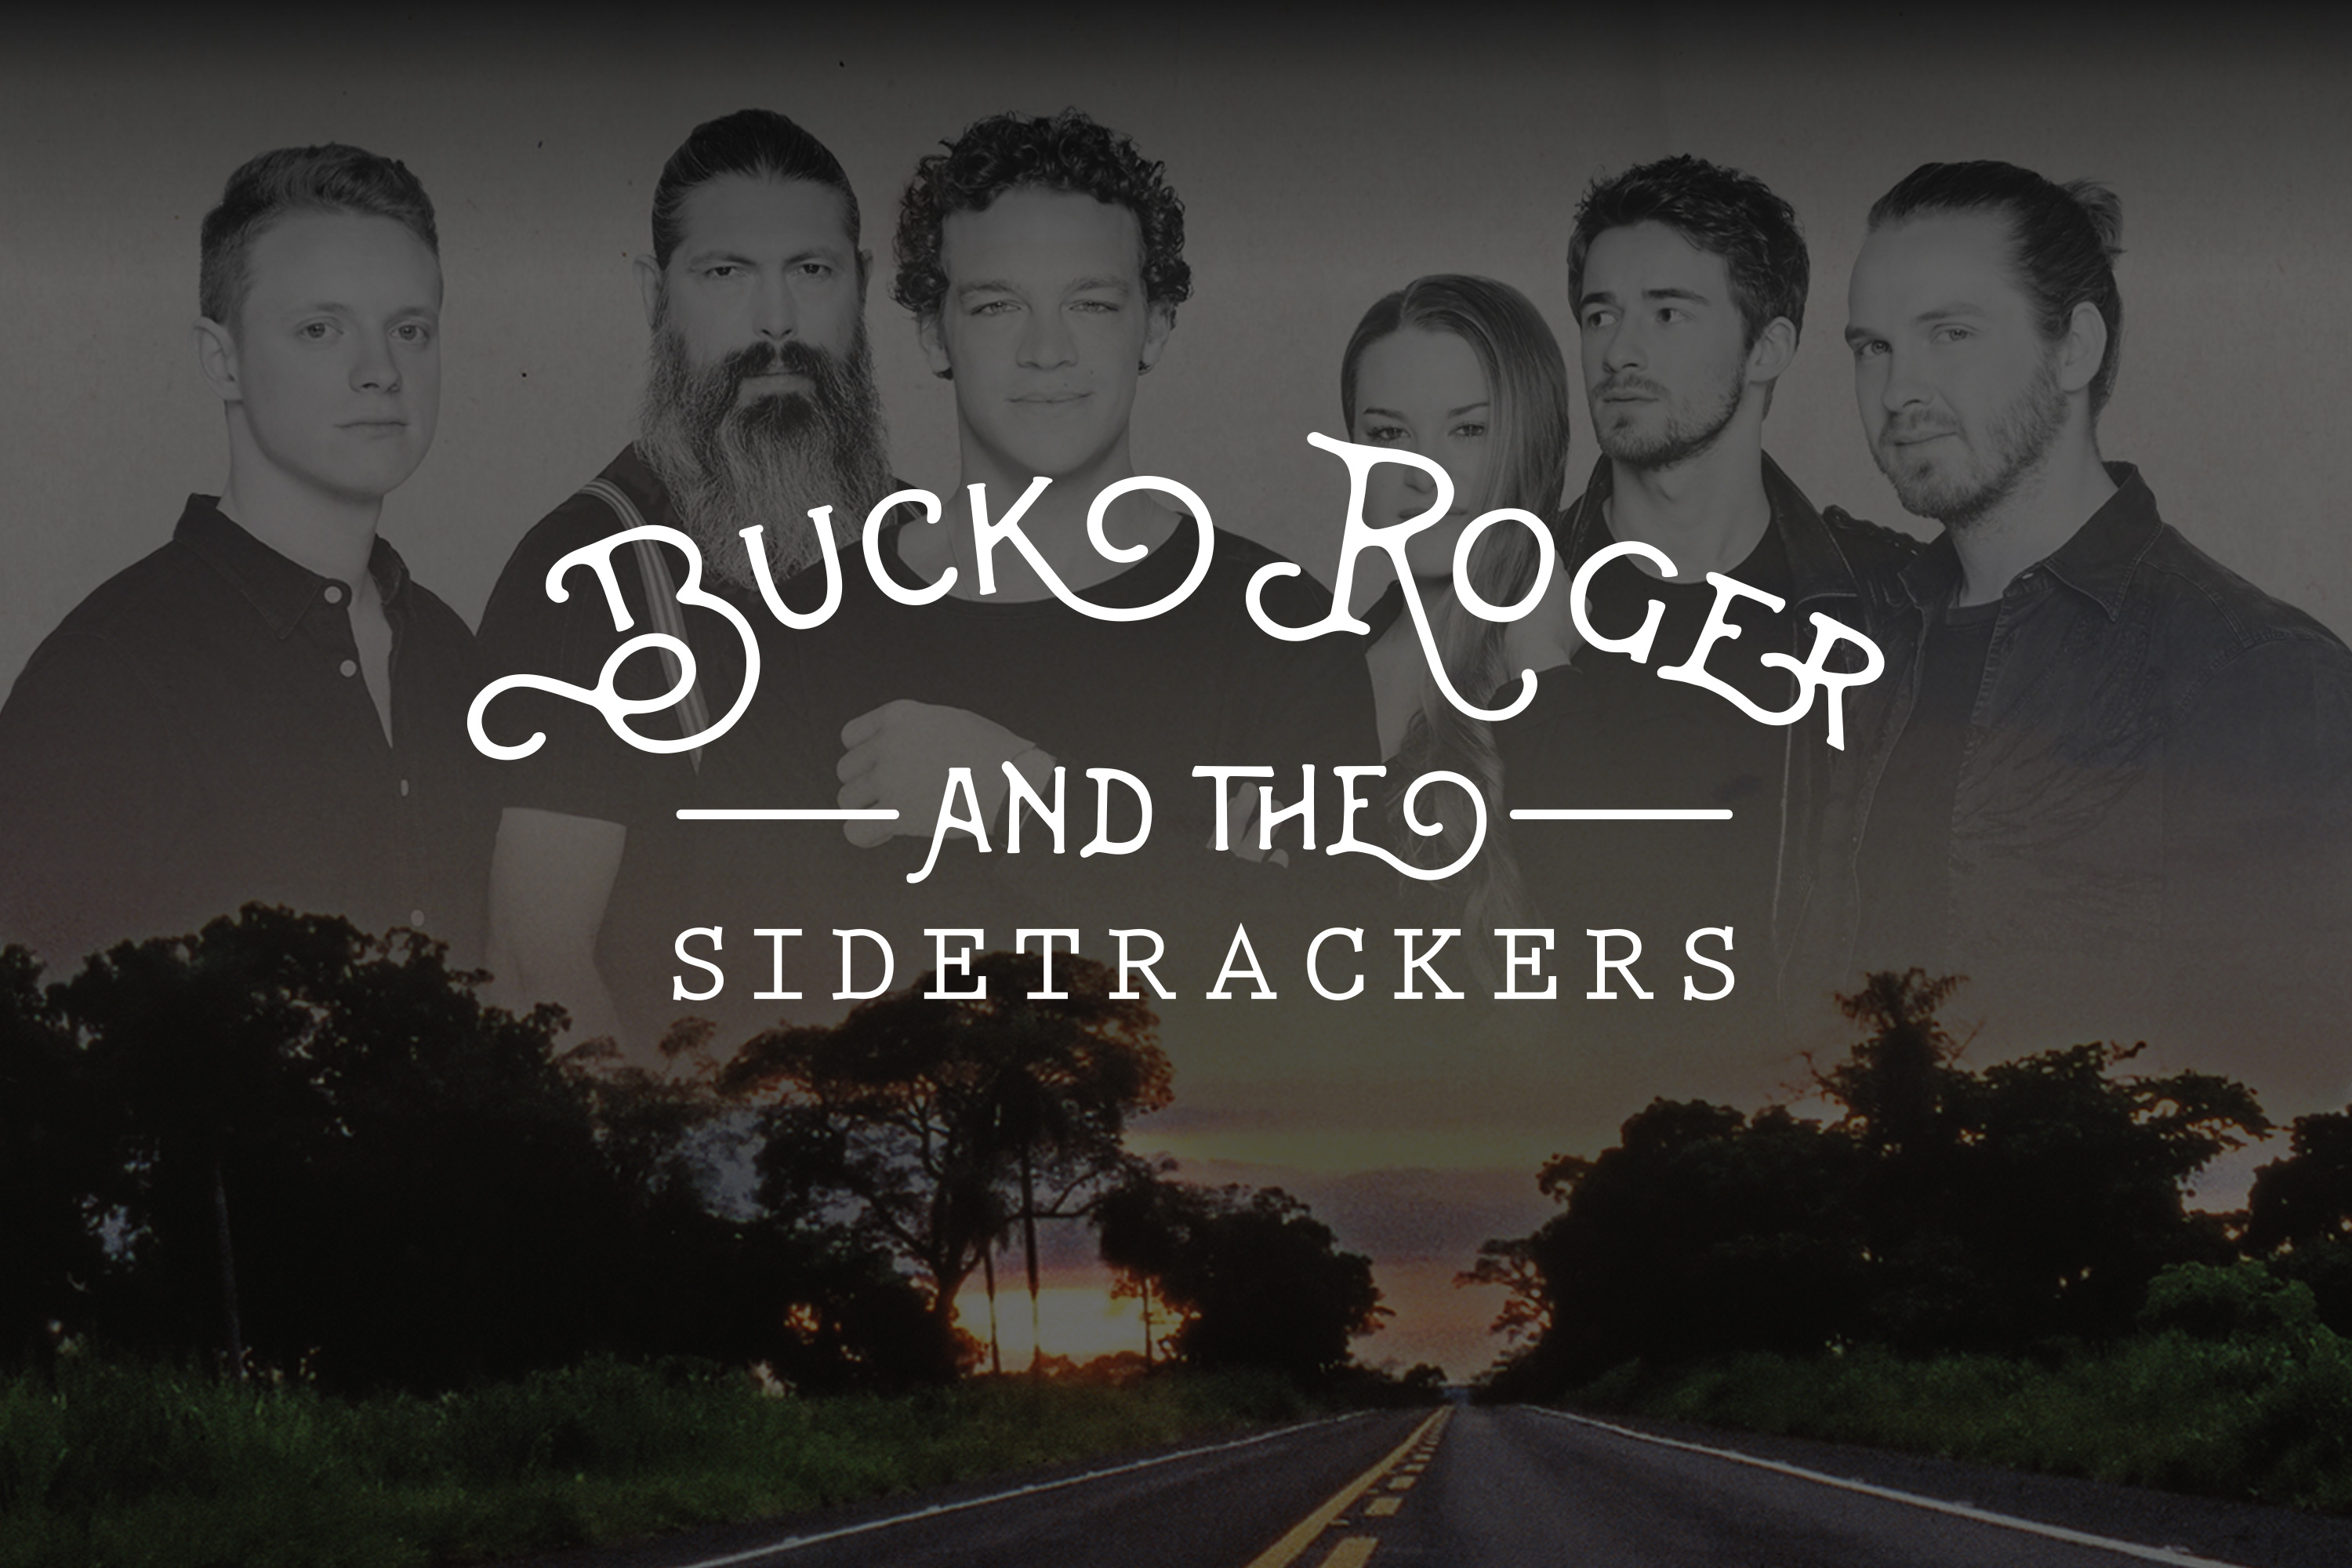 Buck Roger & the Sidetrackers